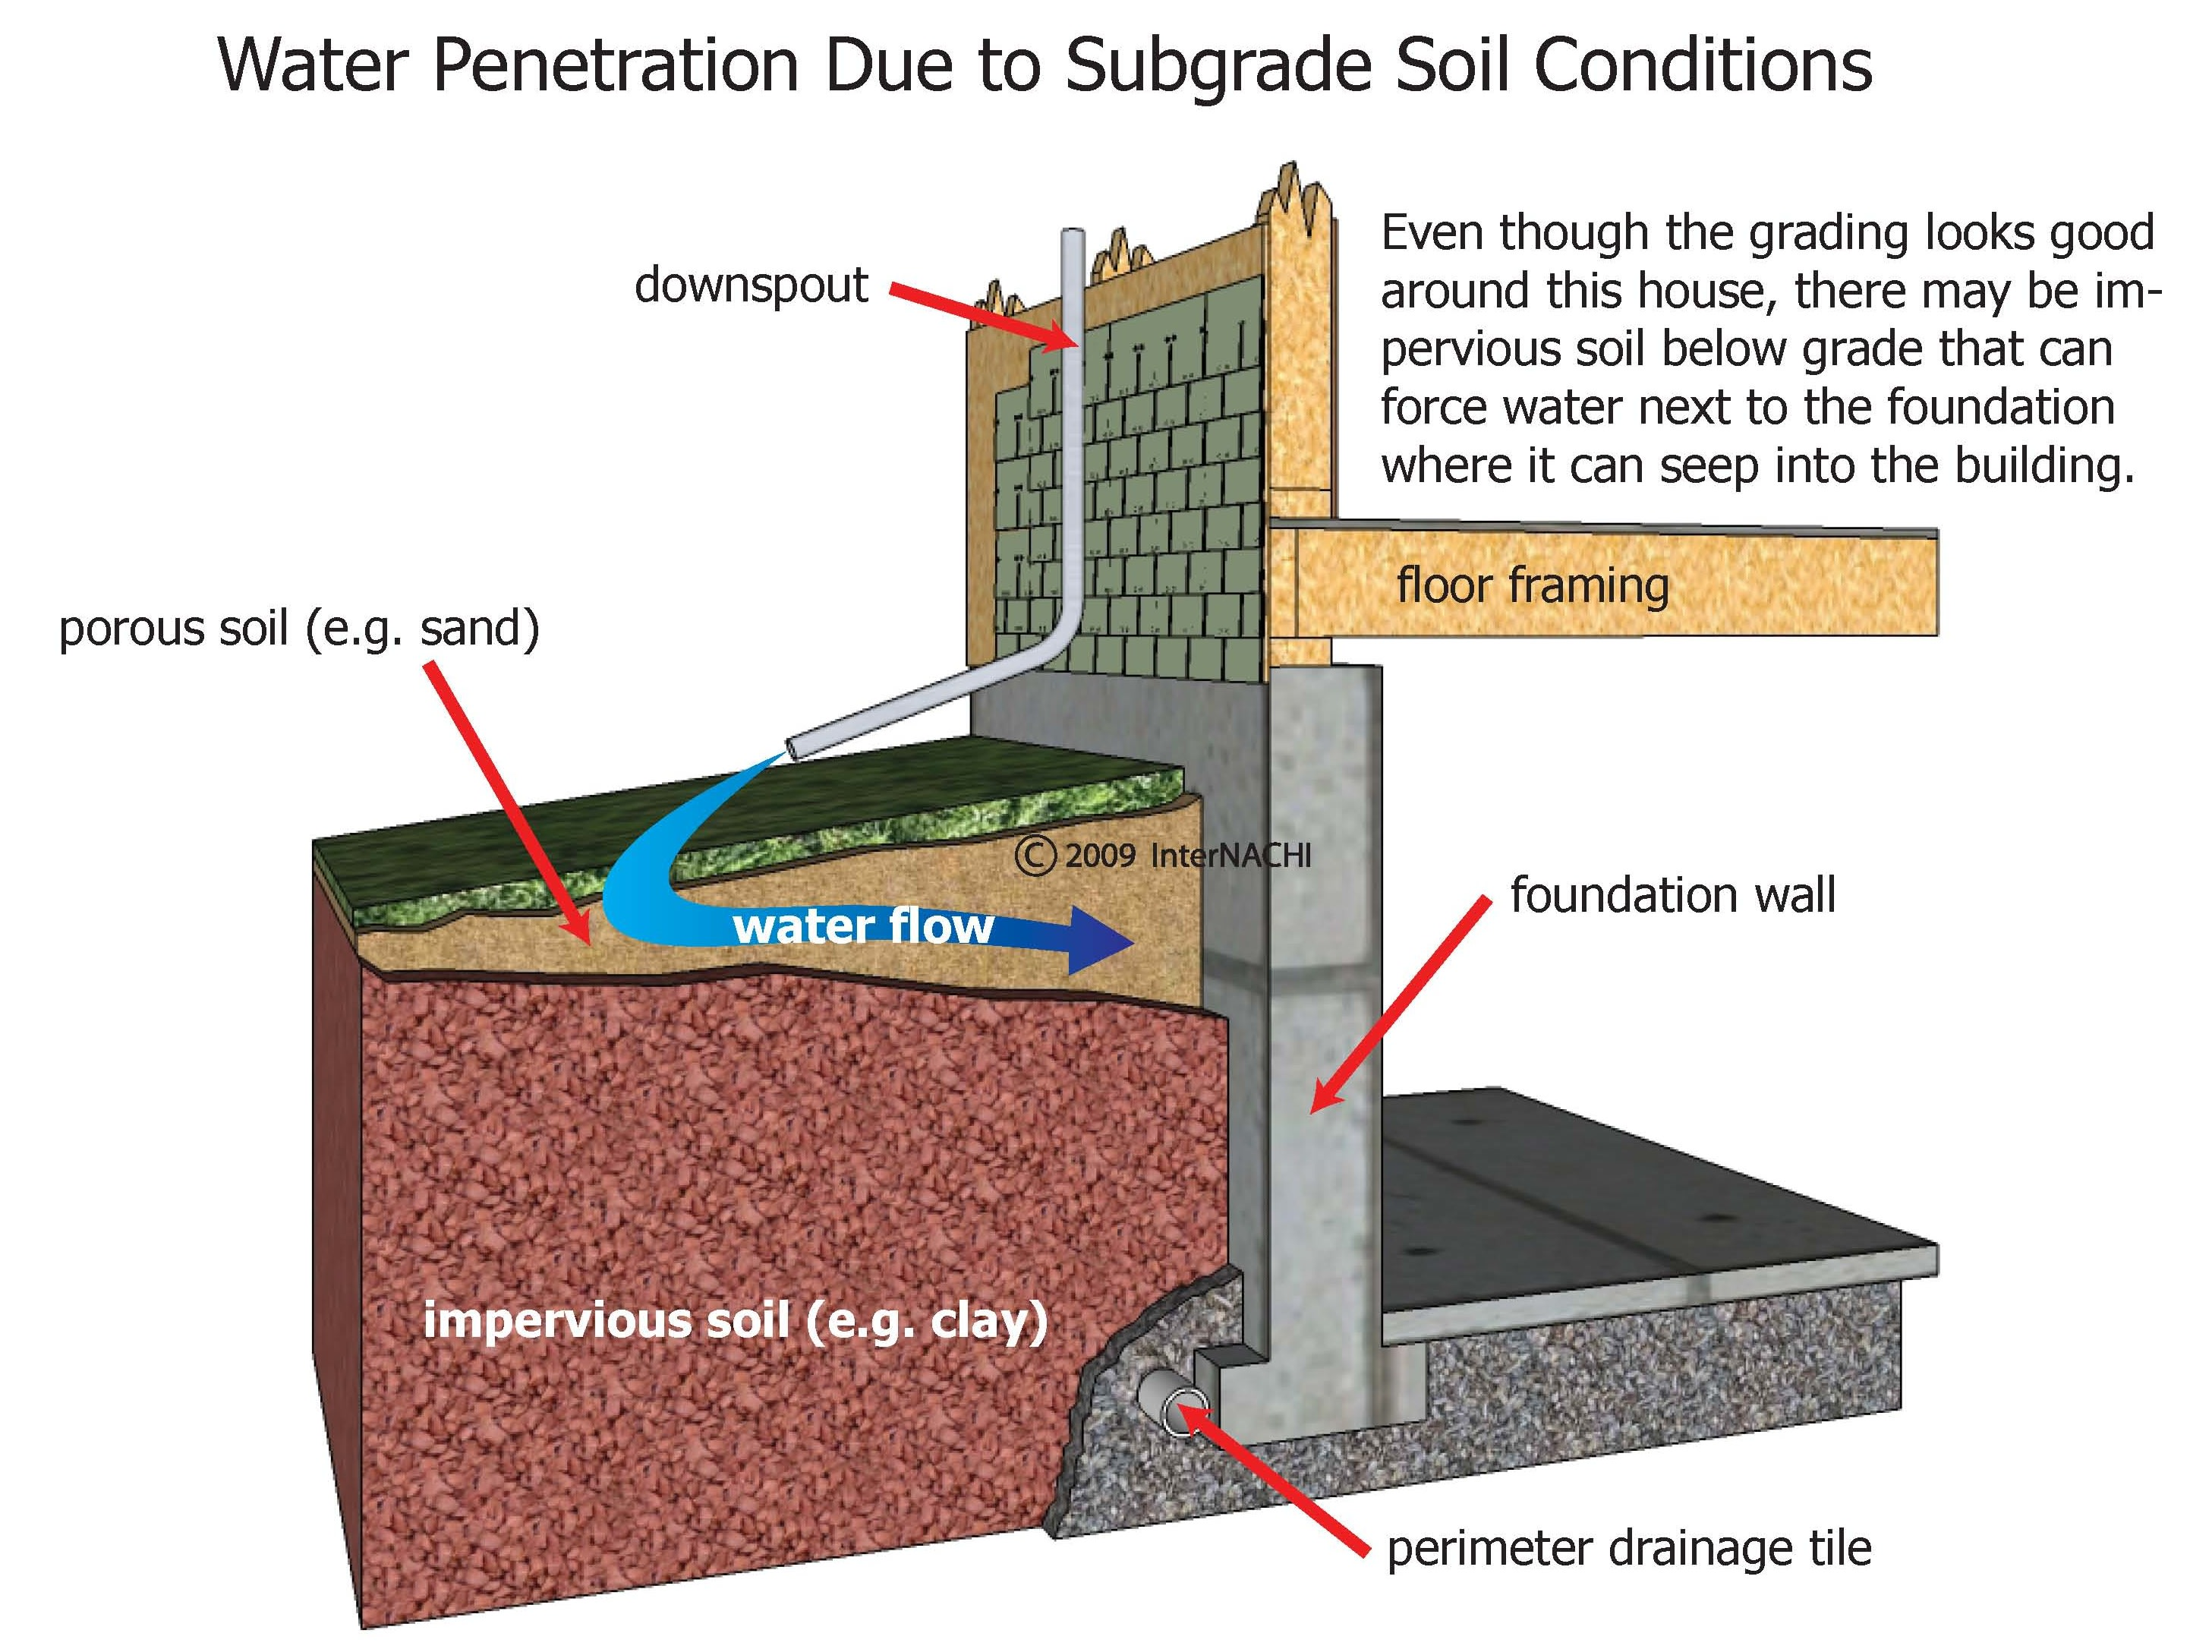 Sewer foundation penetration